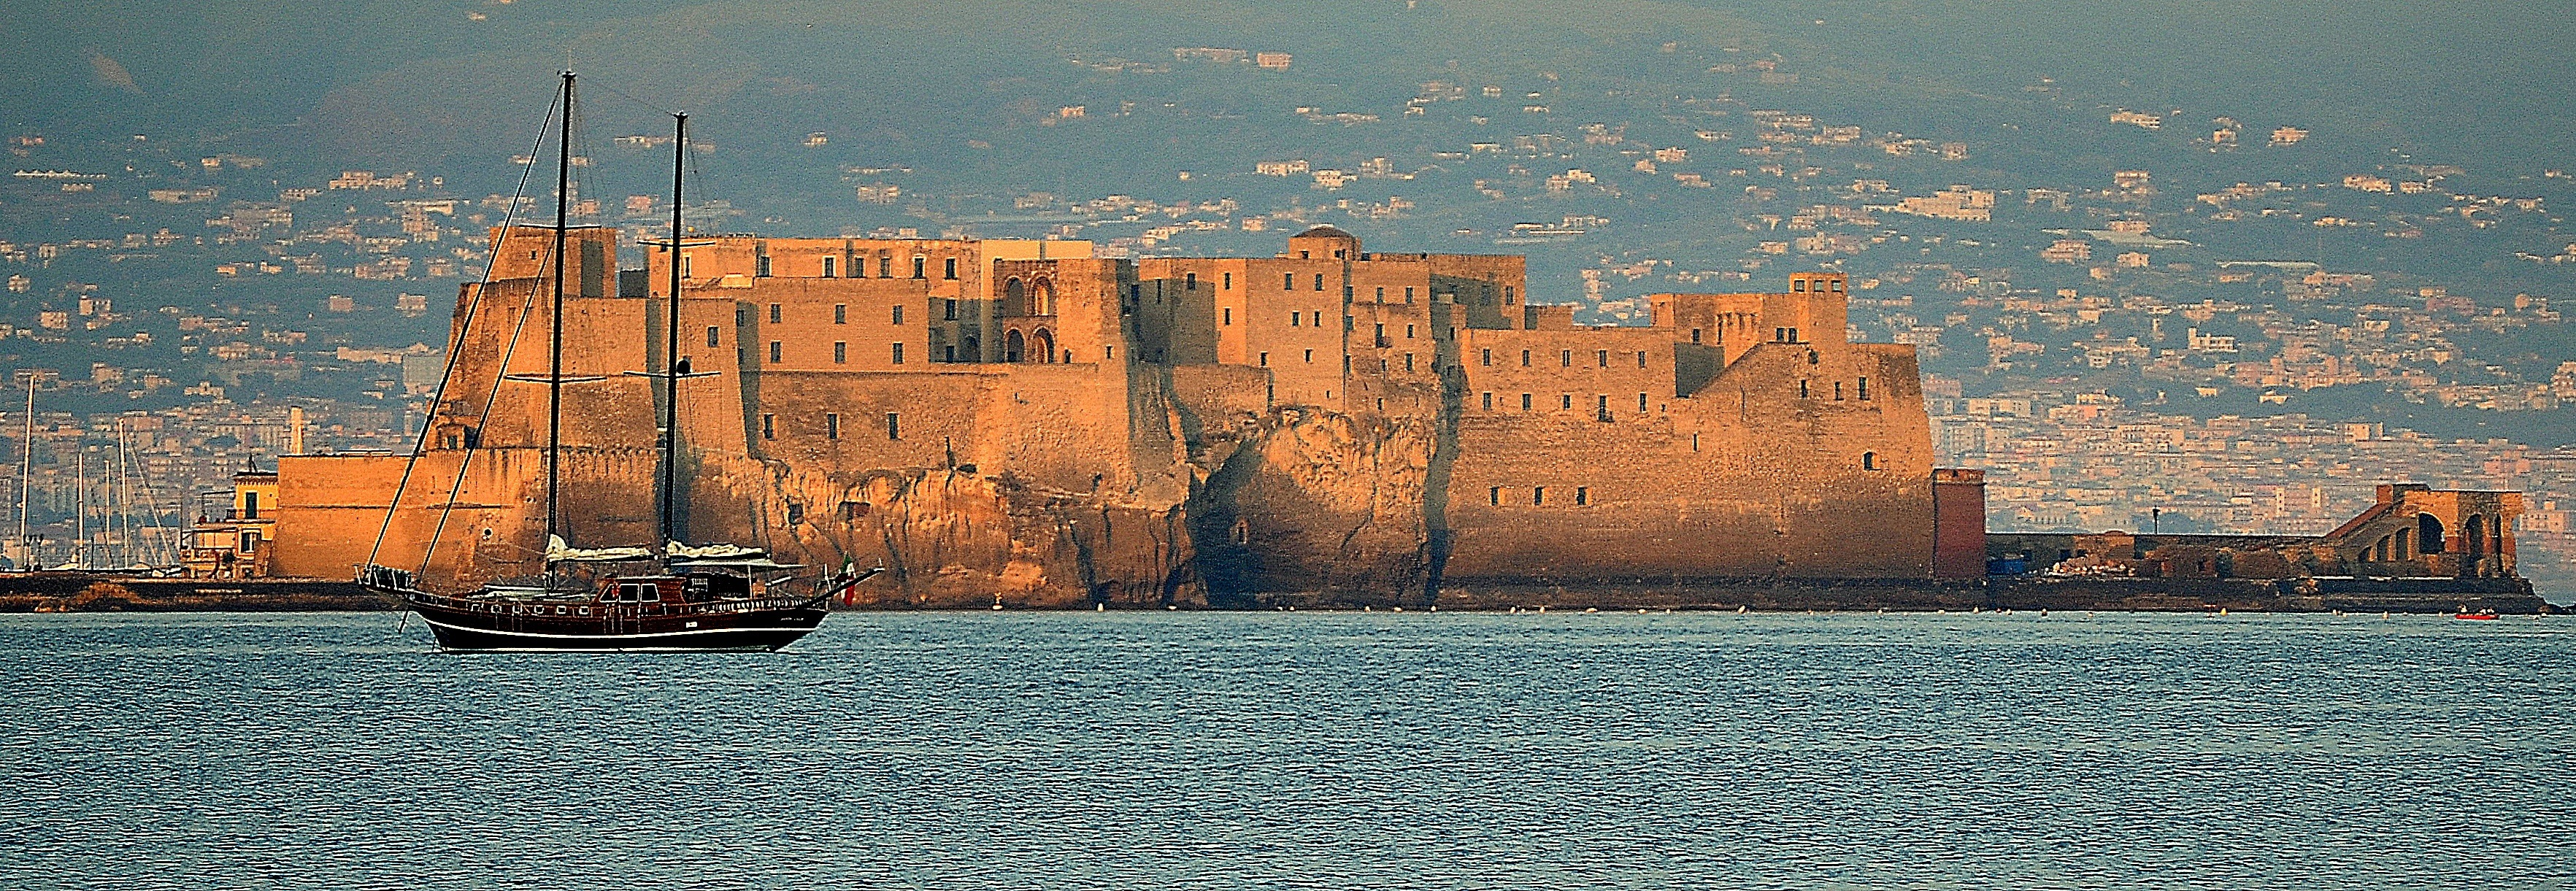 CASTEL DELL'OVO (photo by Nunzia Marlino)